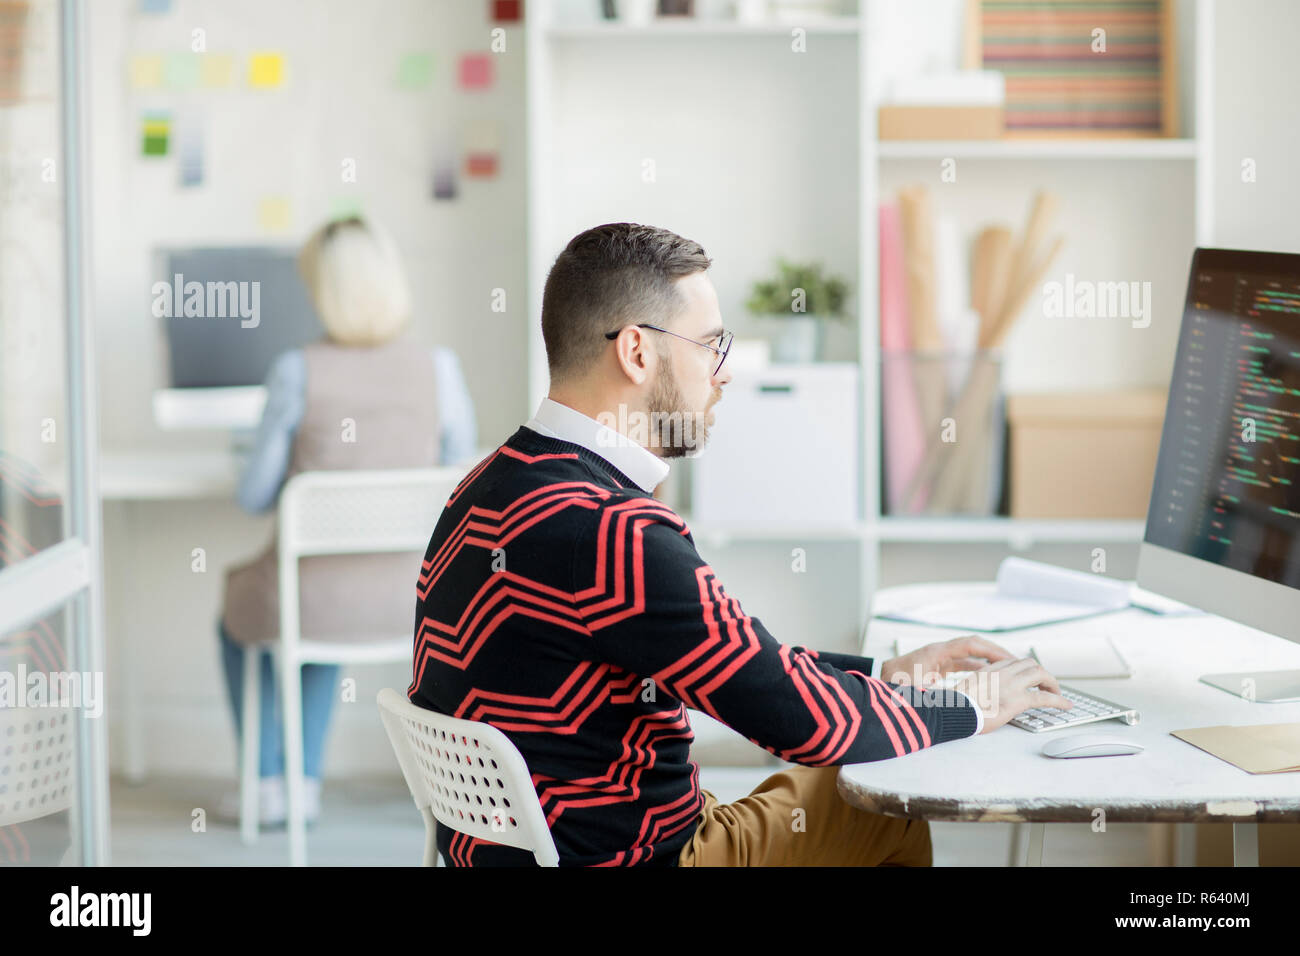 Concentrated on coding process - Stock Image